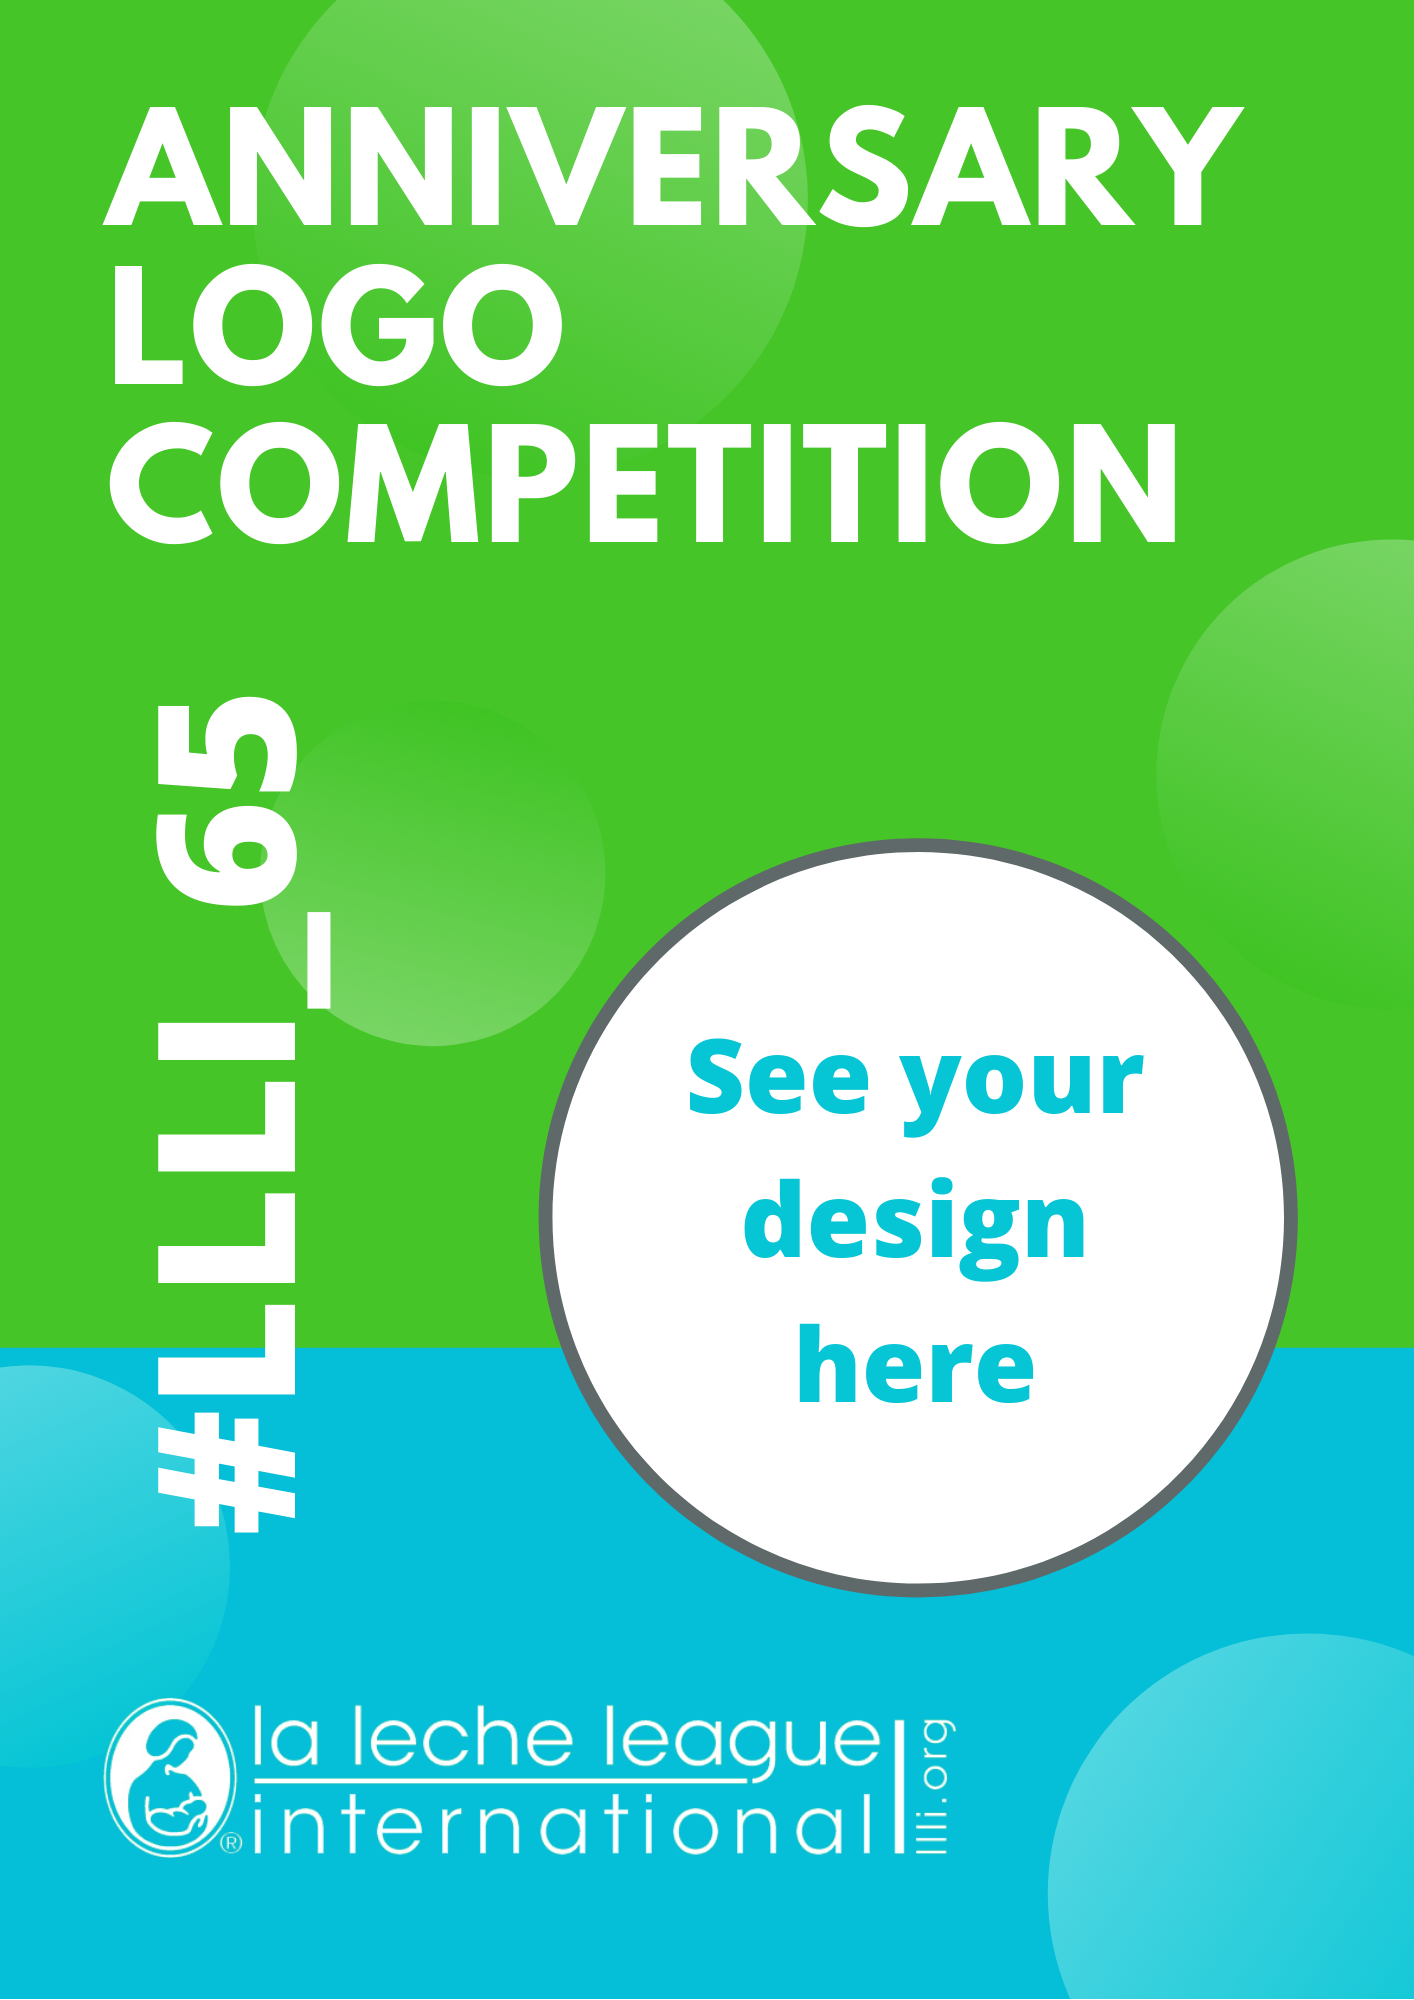 Square image. Top main section is LLLI branded green, with lighter green circle motif. Bottom section is LLLI branded teal. Across the two sections is a white circle with text inside: See your design here. Text across the top of the green section is: Anniversary logo competition. Vertical text along the left hand side is: #LLLI_65